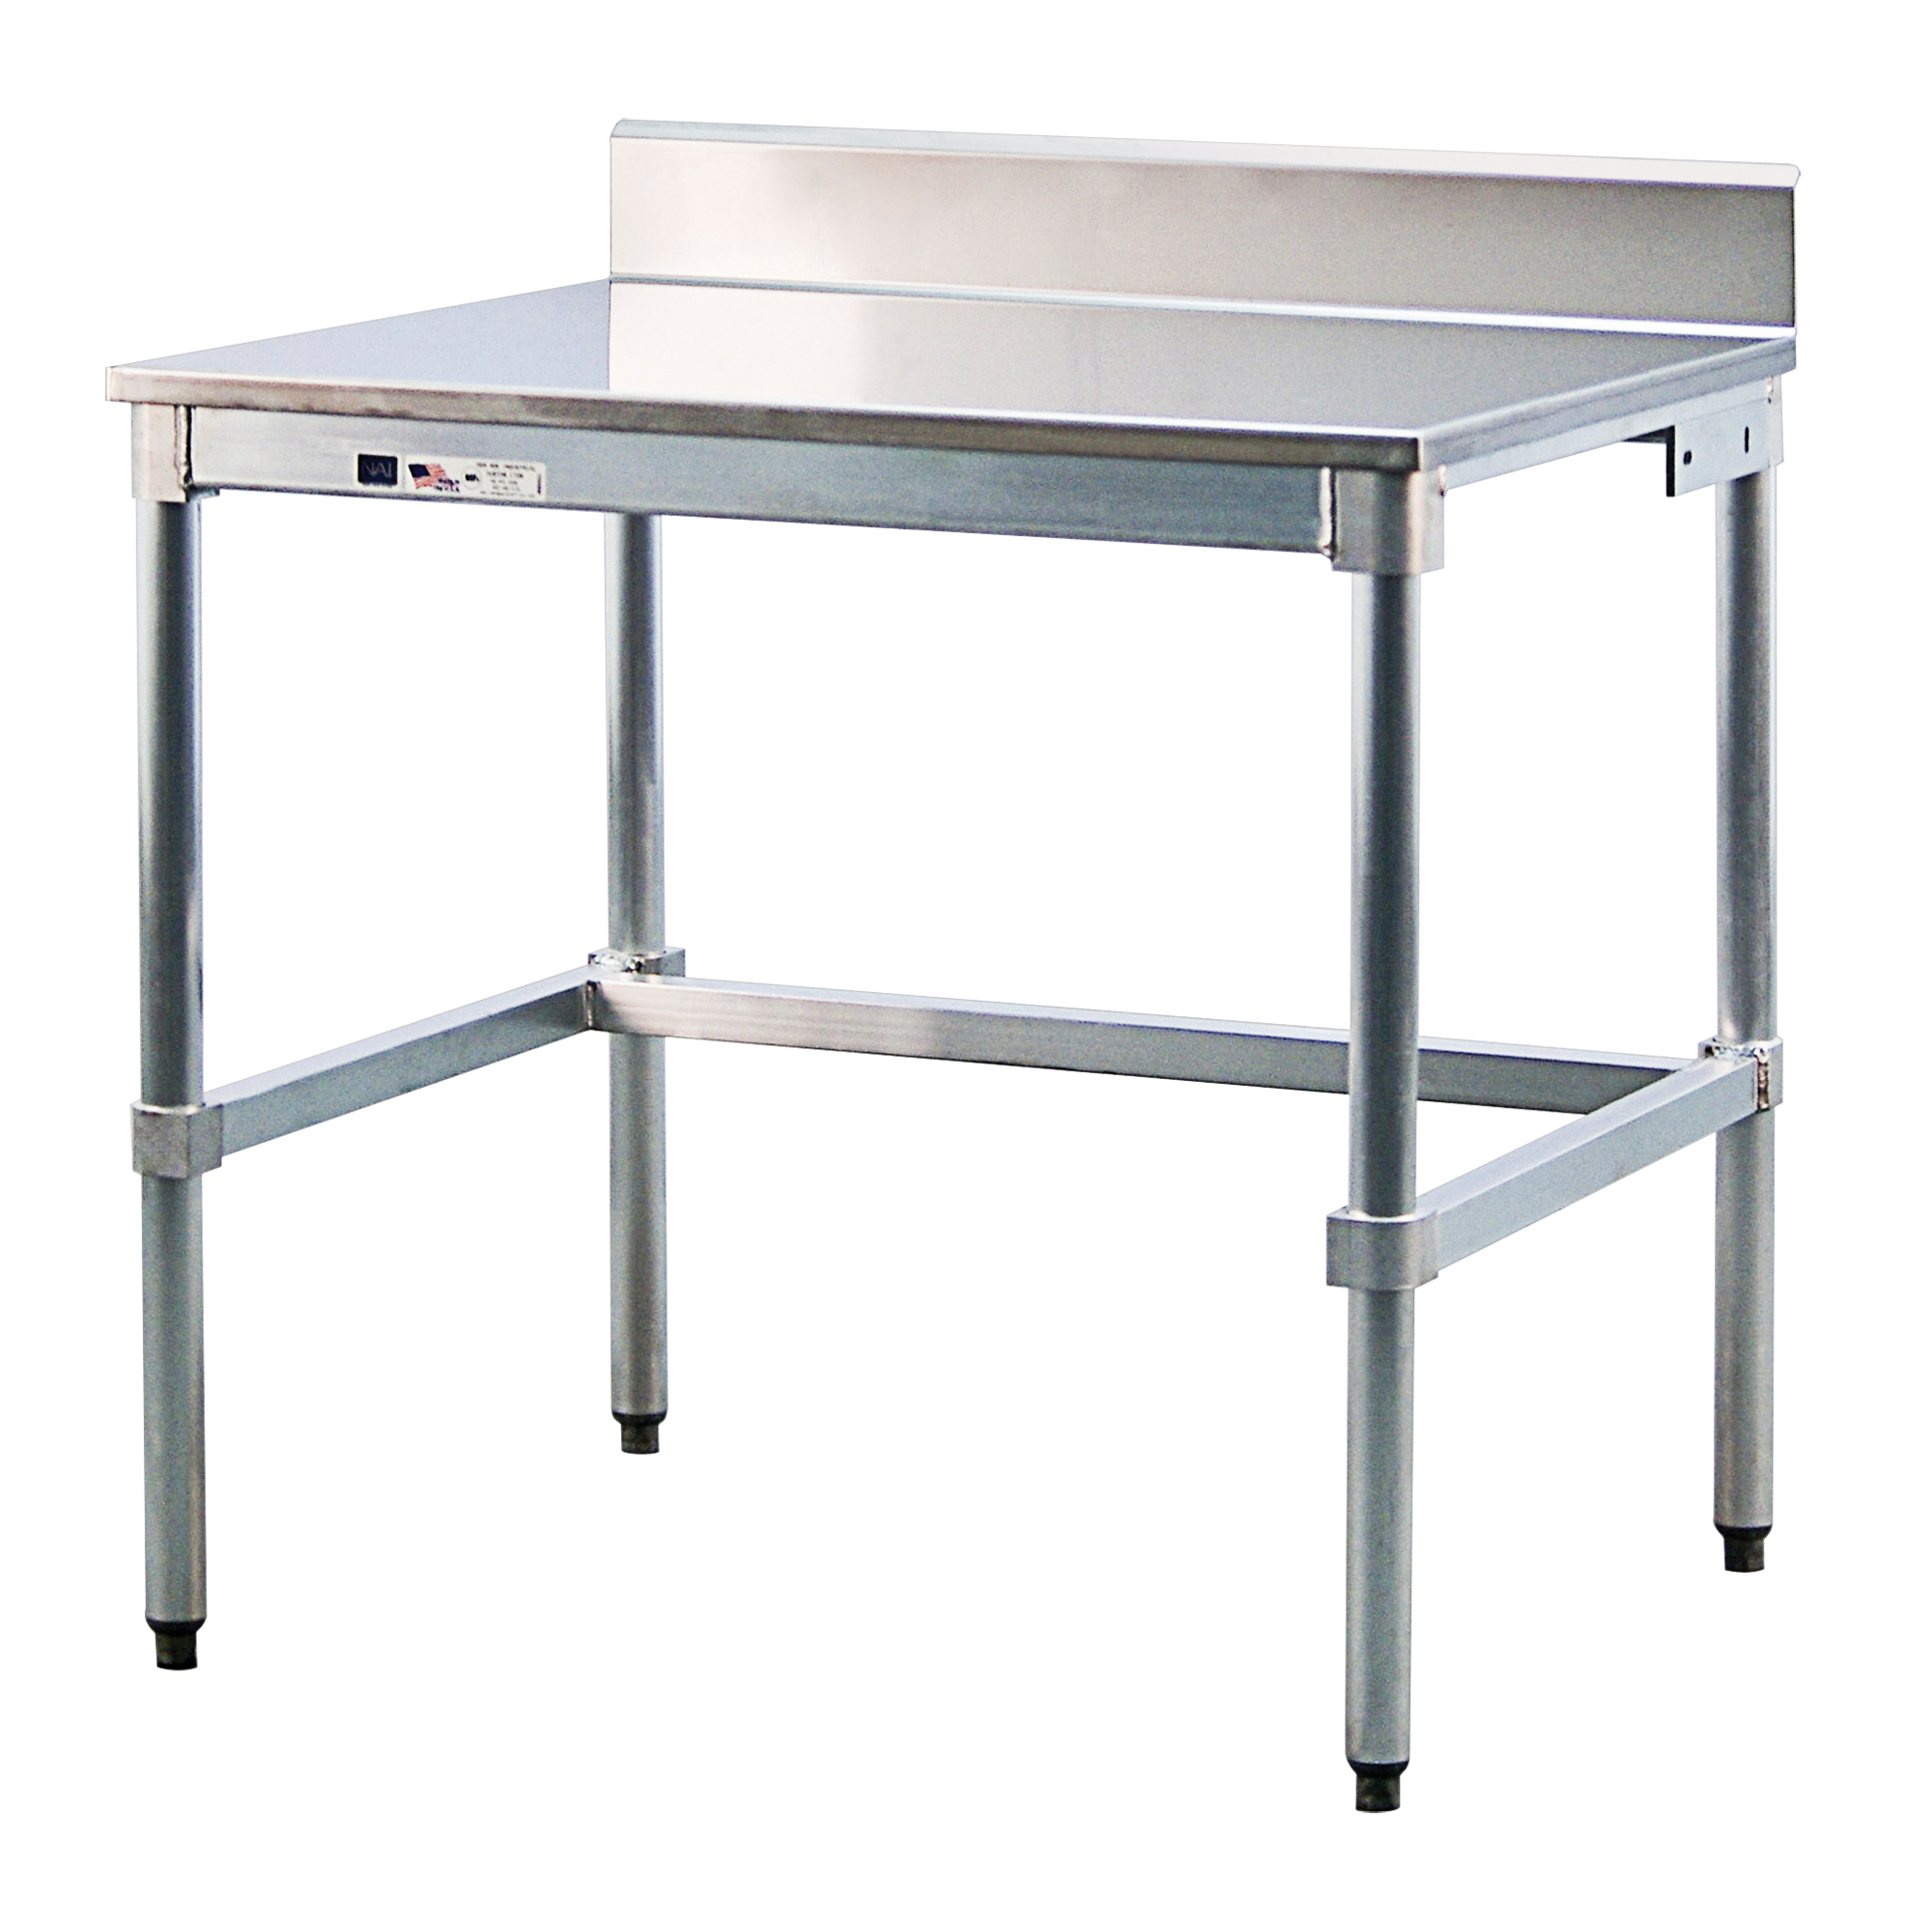 New Age Industrial Stainless Steel Top Workbench Mo476 24ssb48kd Shop Stainless Workbench Tenaquip